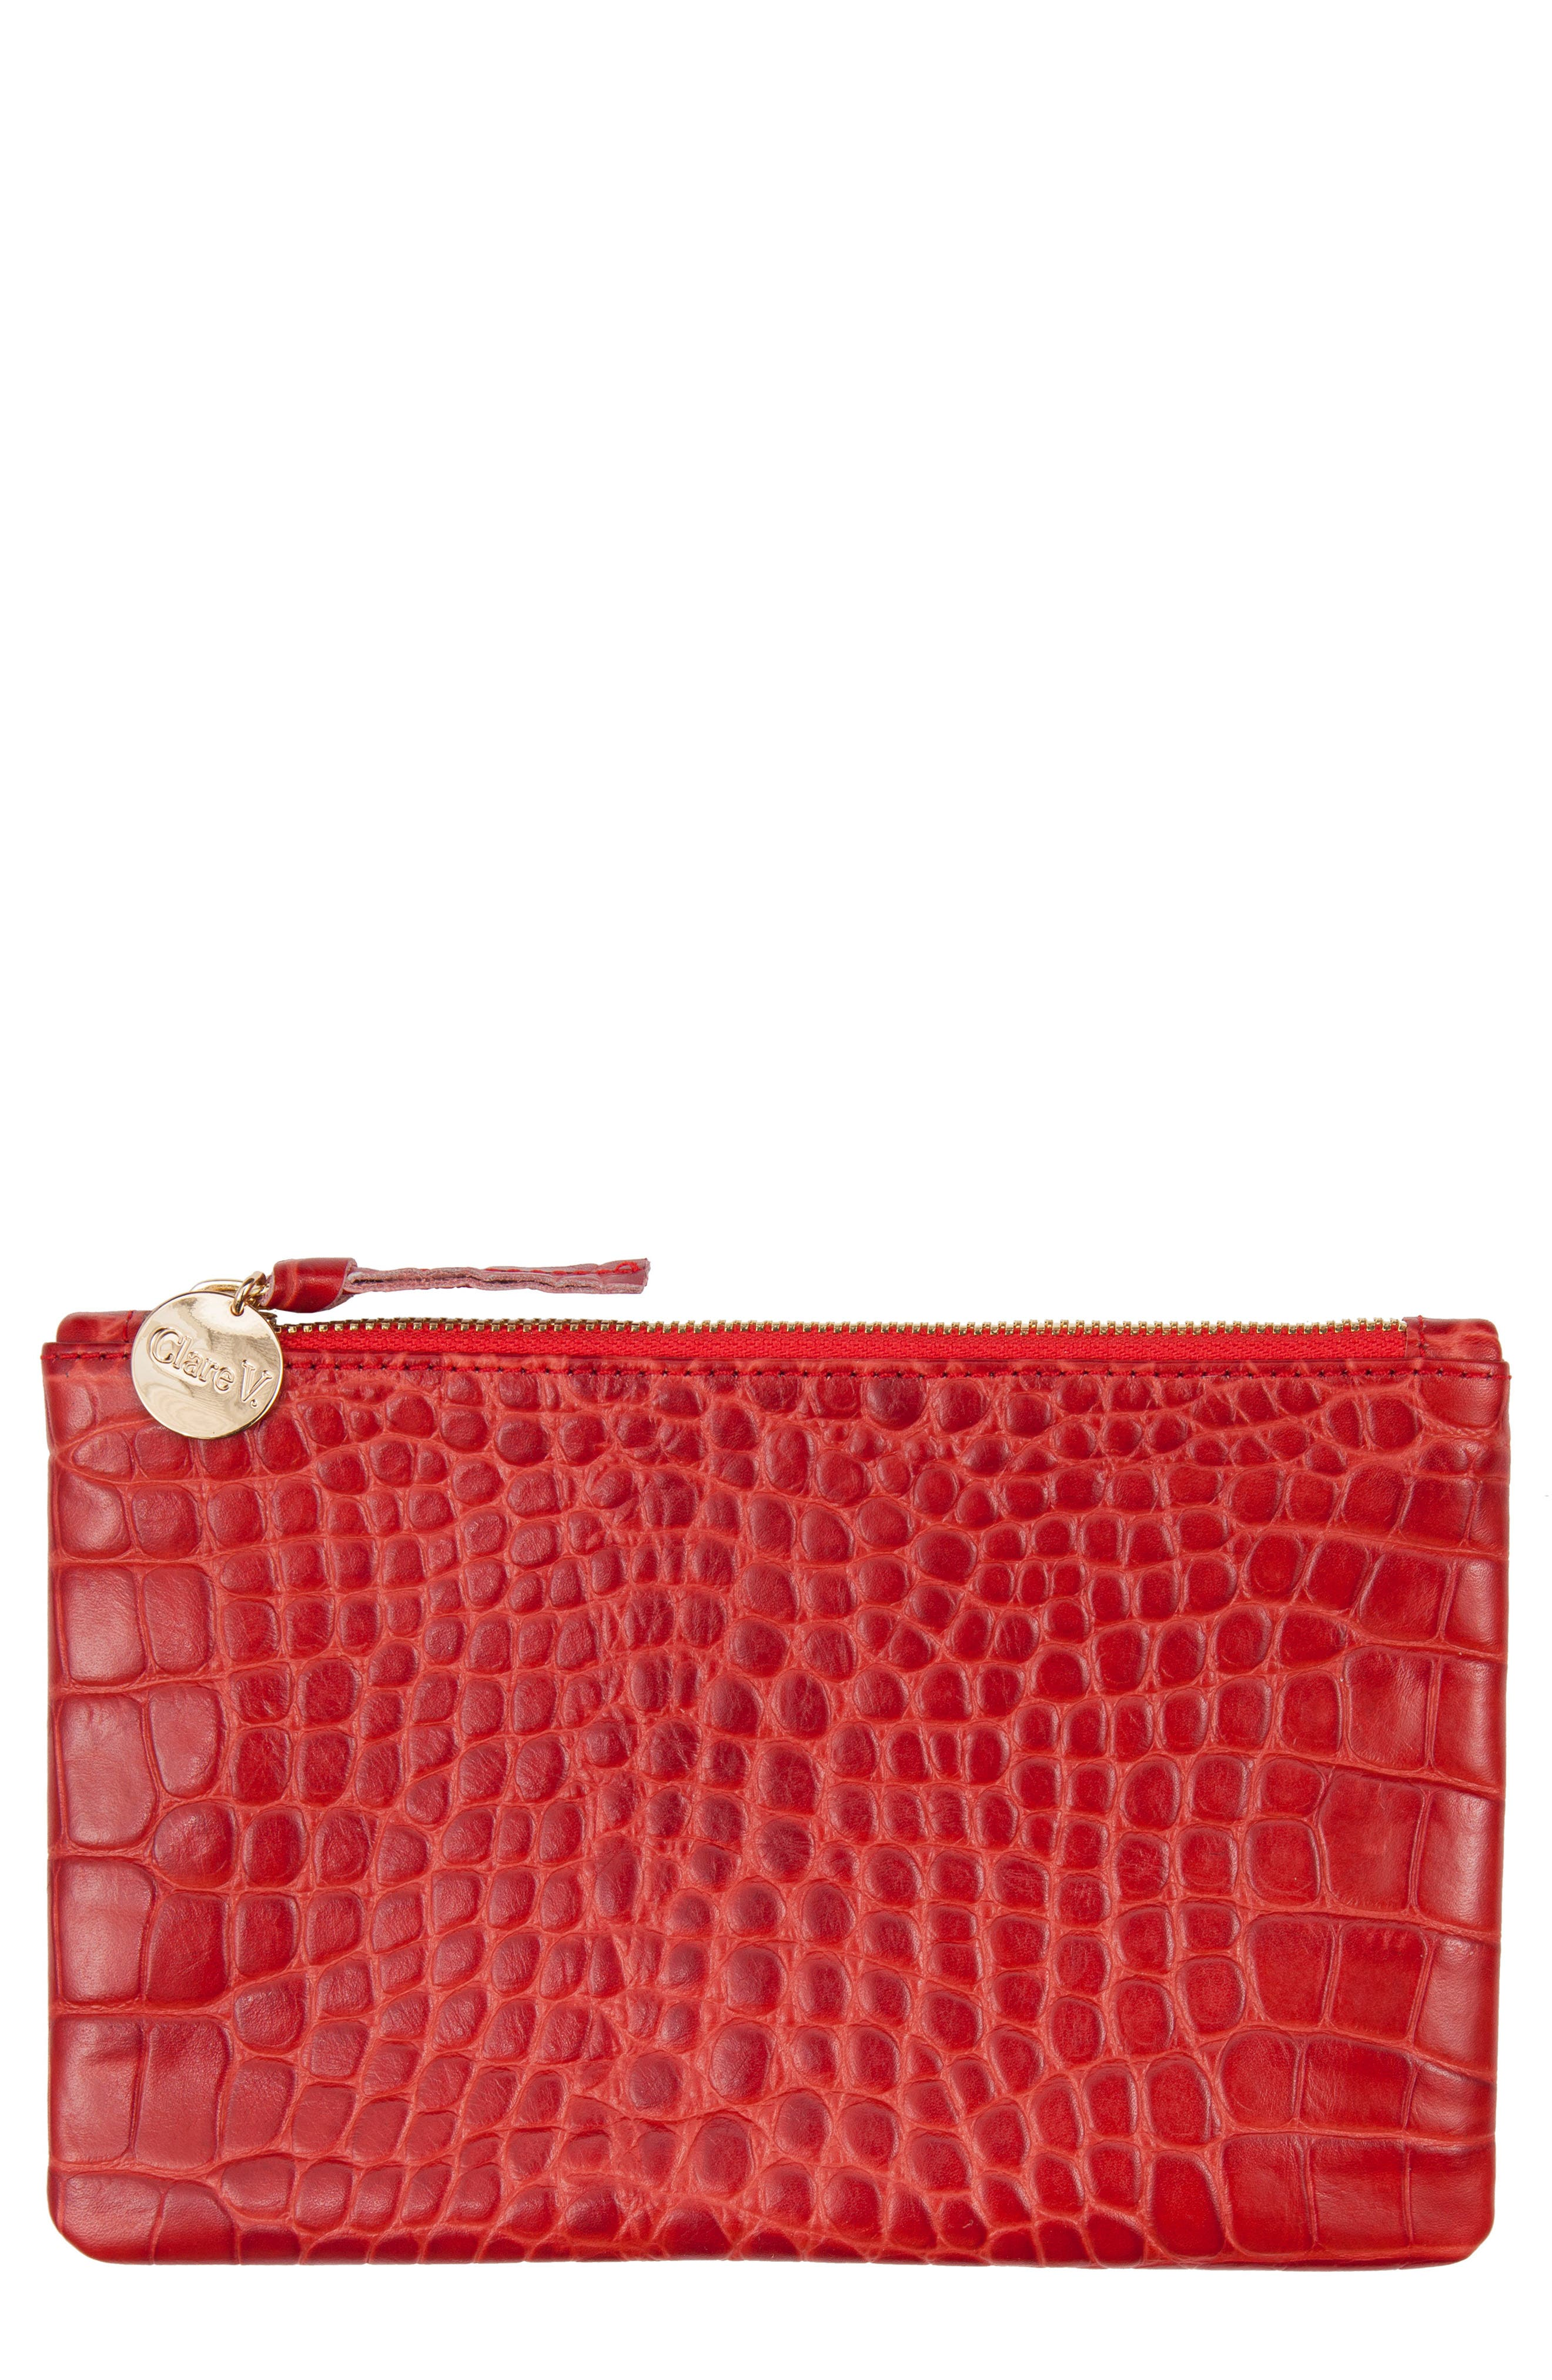 Croc Embossed Leather Wallet Clutch,                             Main thumbnail 1, color,                             600